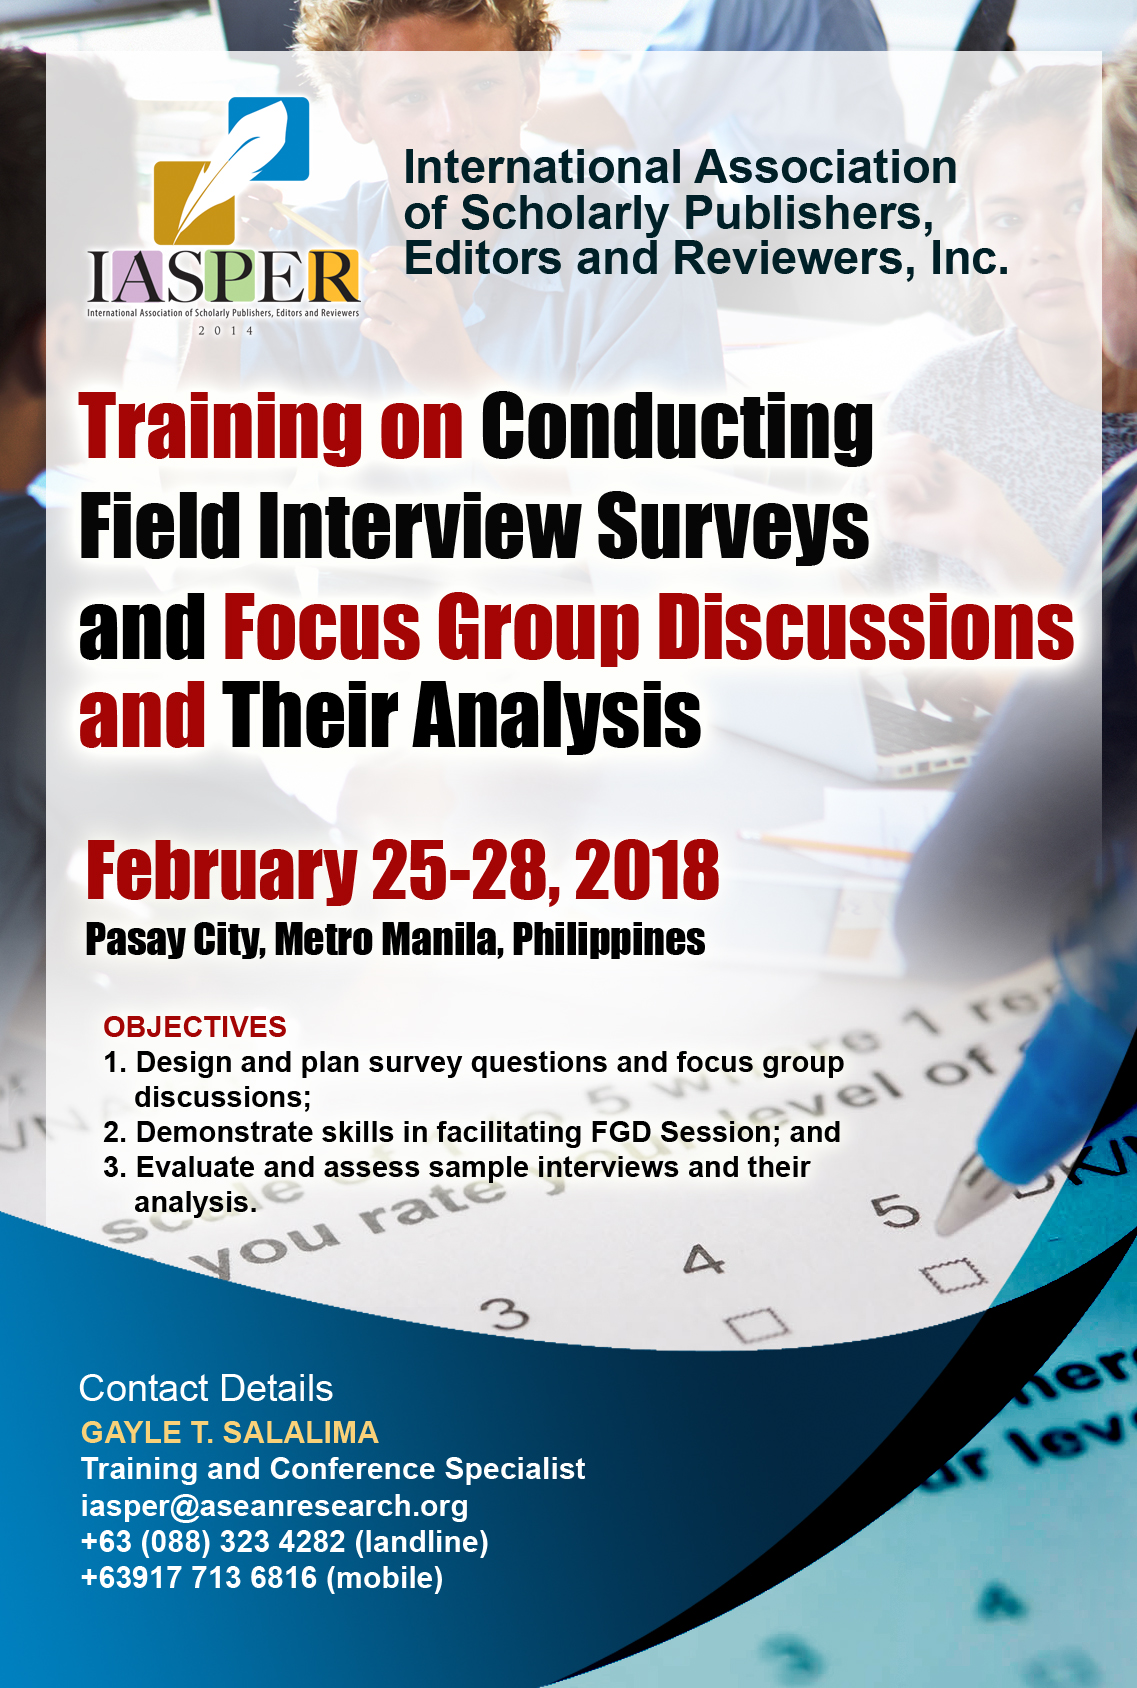 asean research organization training on conducting field interview surveys and focus group discussions and their analysis february 25 28 2018